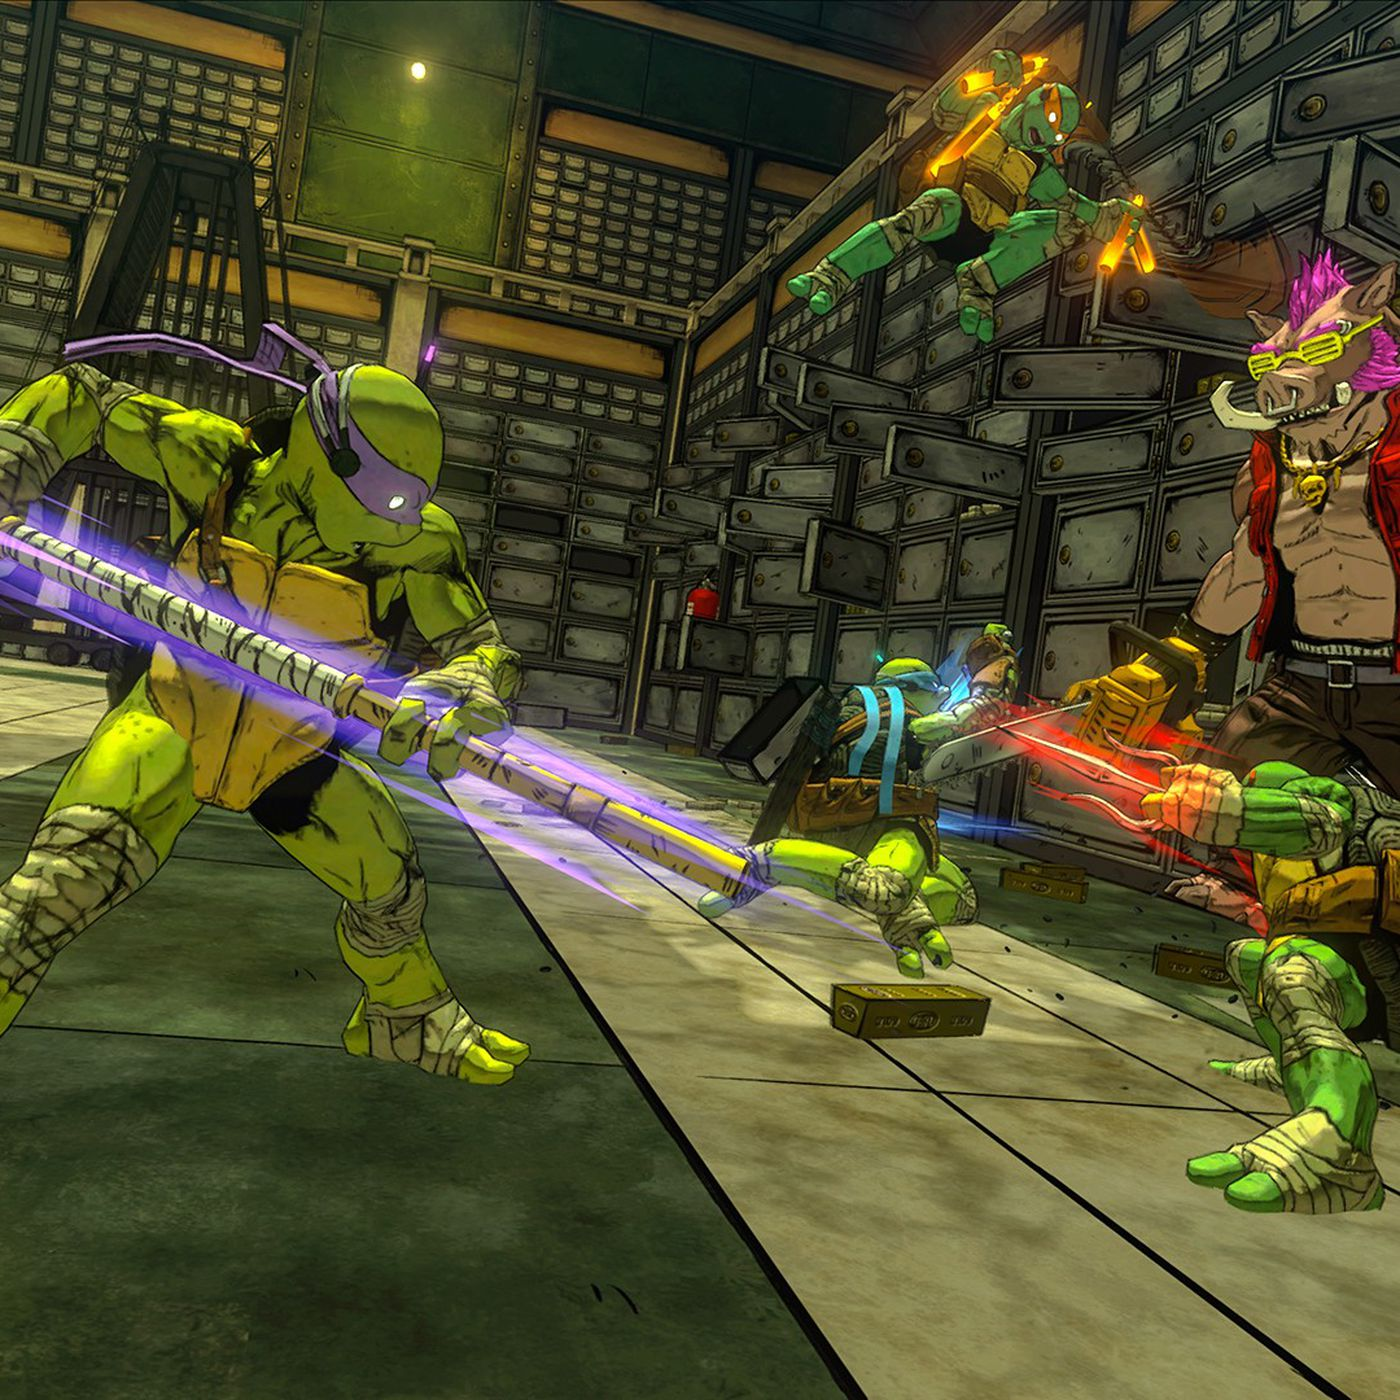 The new TMNT game feels like a proper successor to arcade classic